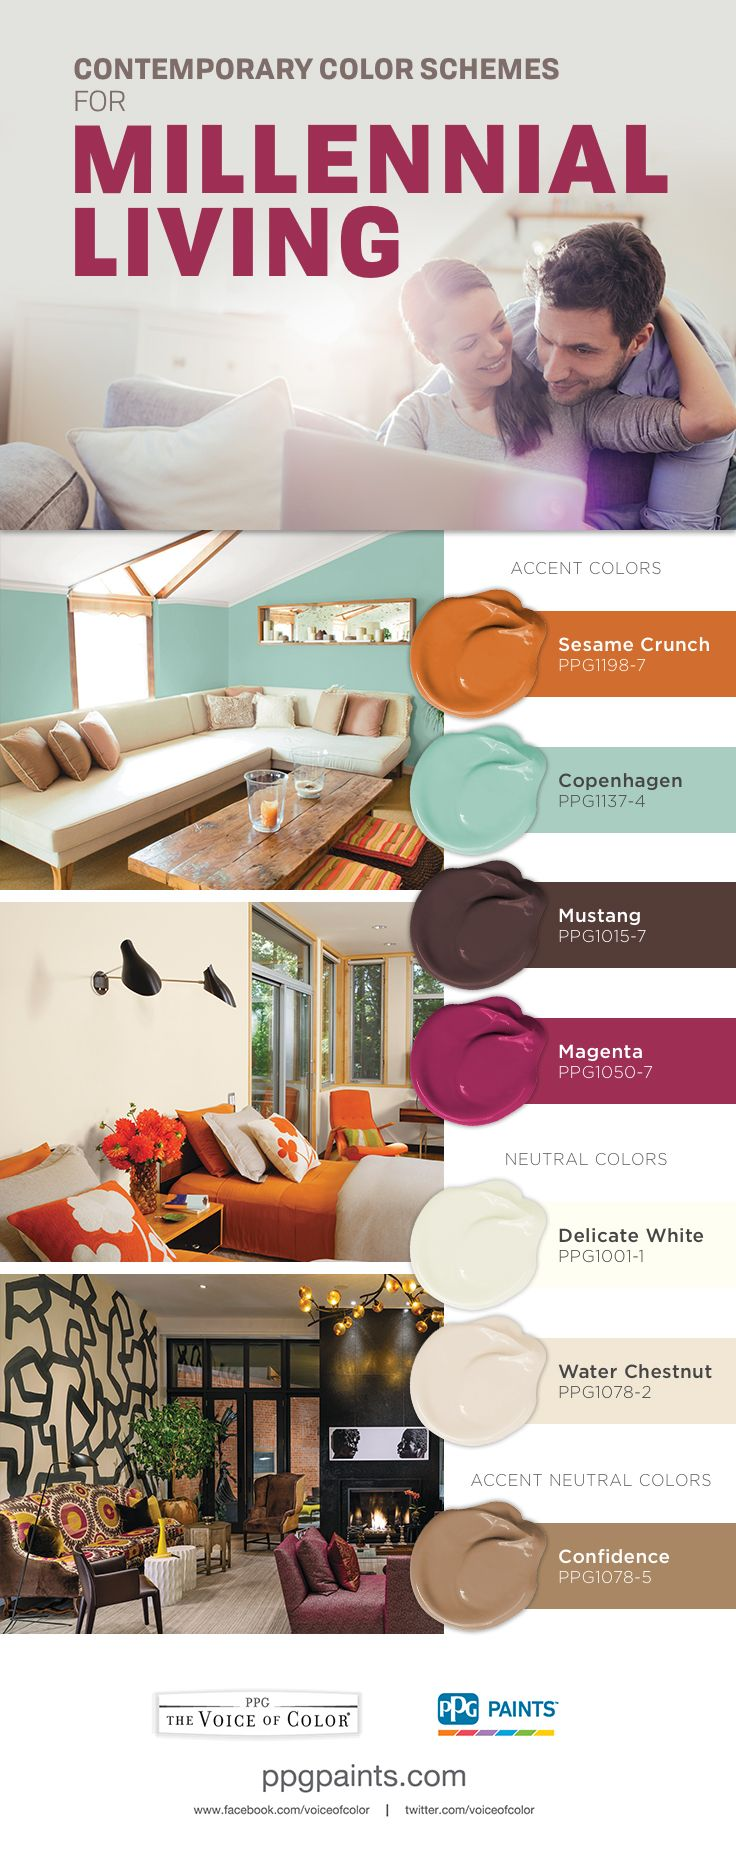 Contemporary Color Schemes For Millennial Living This Paint Color Palette Is Suited For Millennia Millennial Color Palette Paint Color Palettes Color Schemes